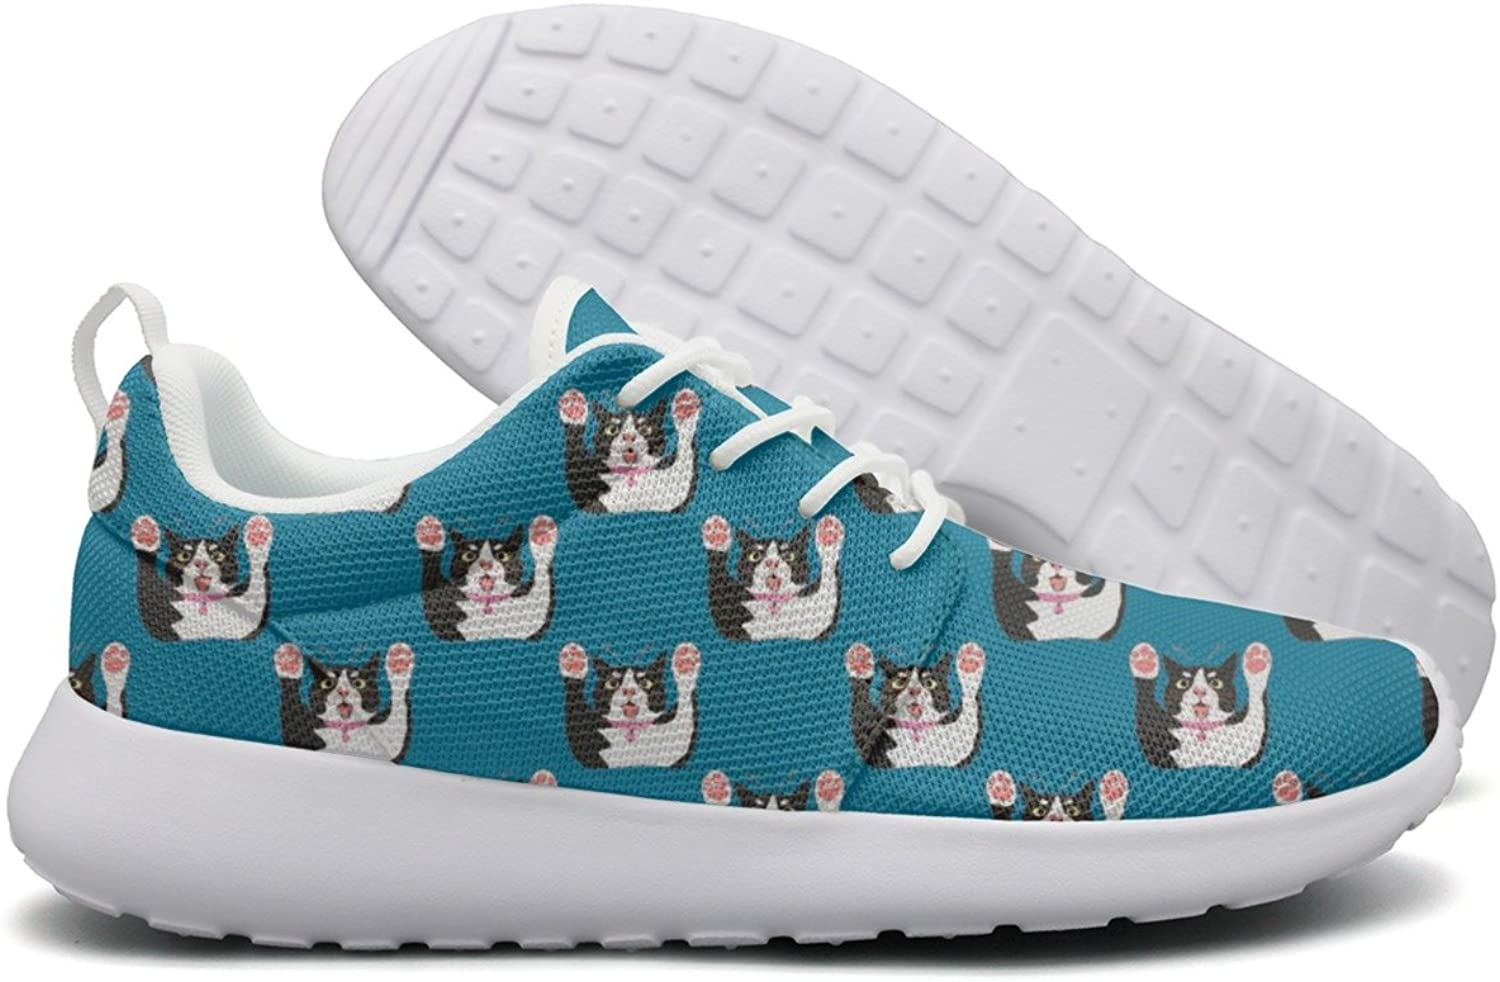 Hoohle Sports Cute Cat Want Hug bluee Background Womens Roshe One Flex Mesh Running shoes Men